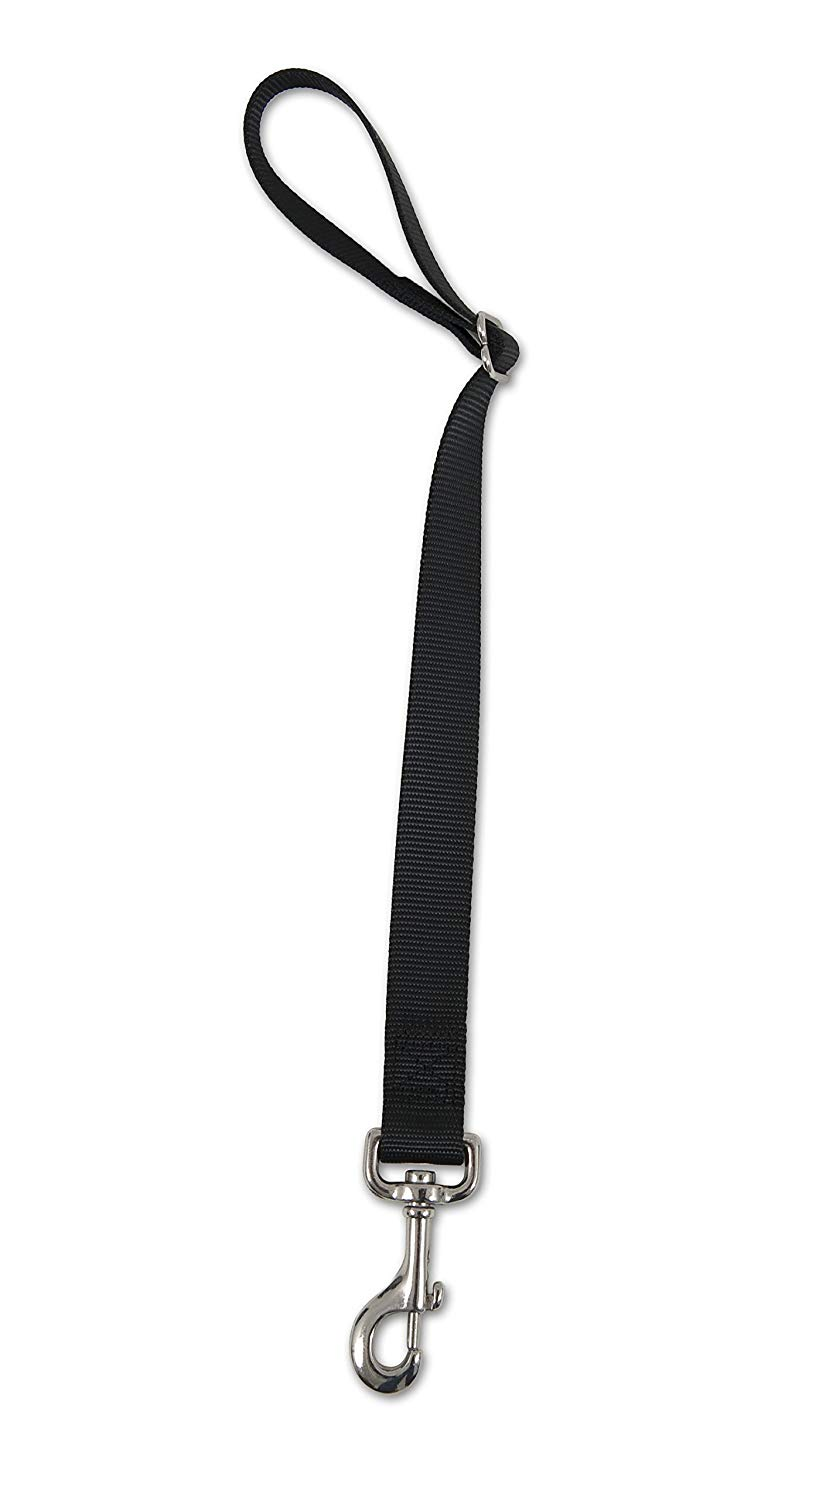 Petmate 11482 Seat Belt Loop Tether for Pets